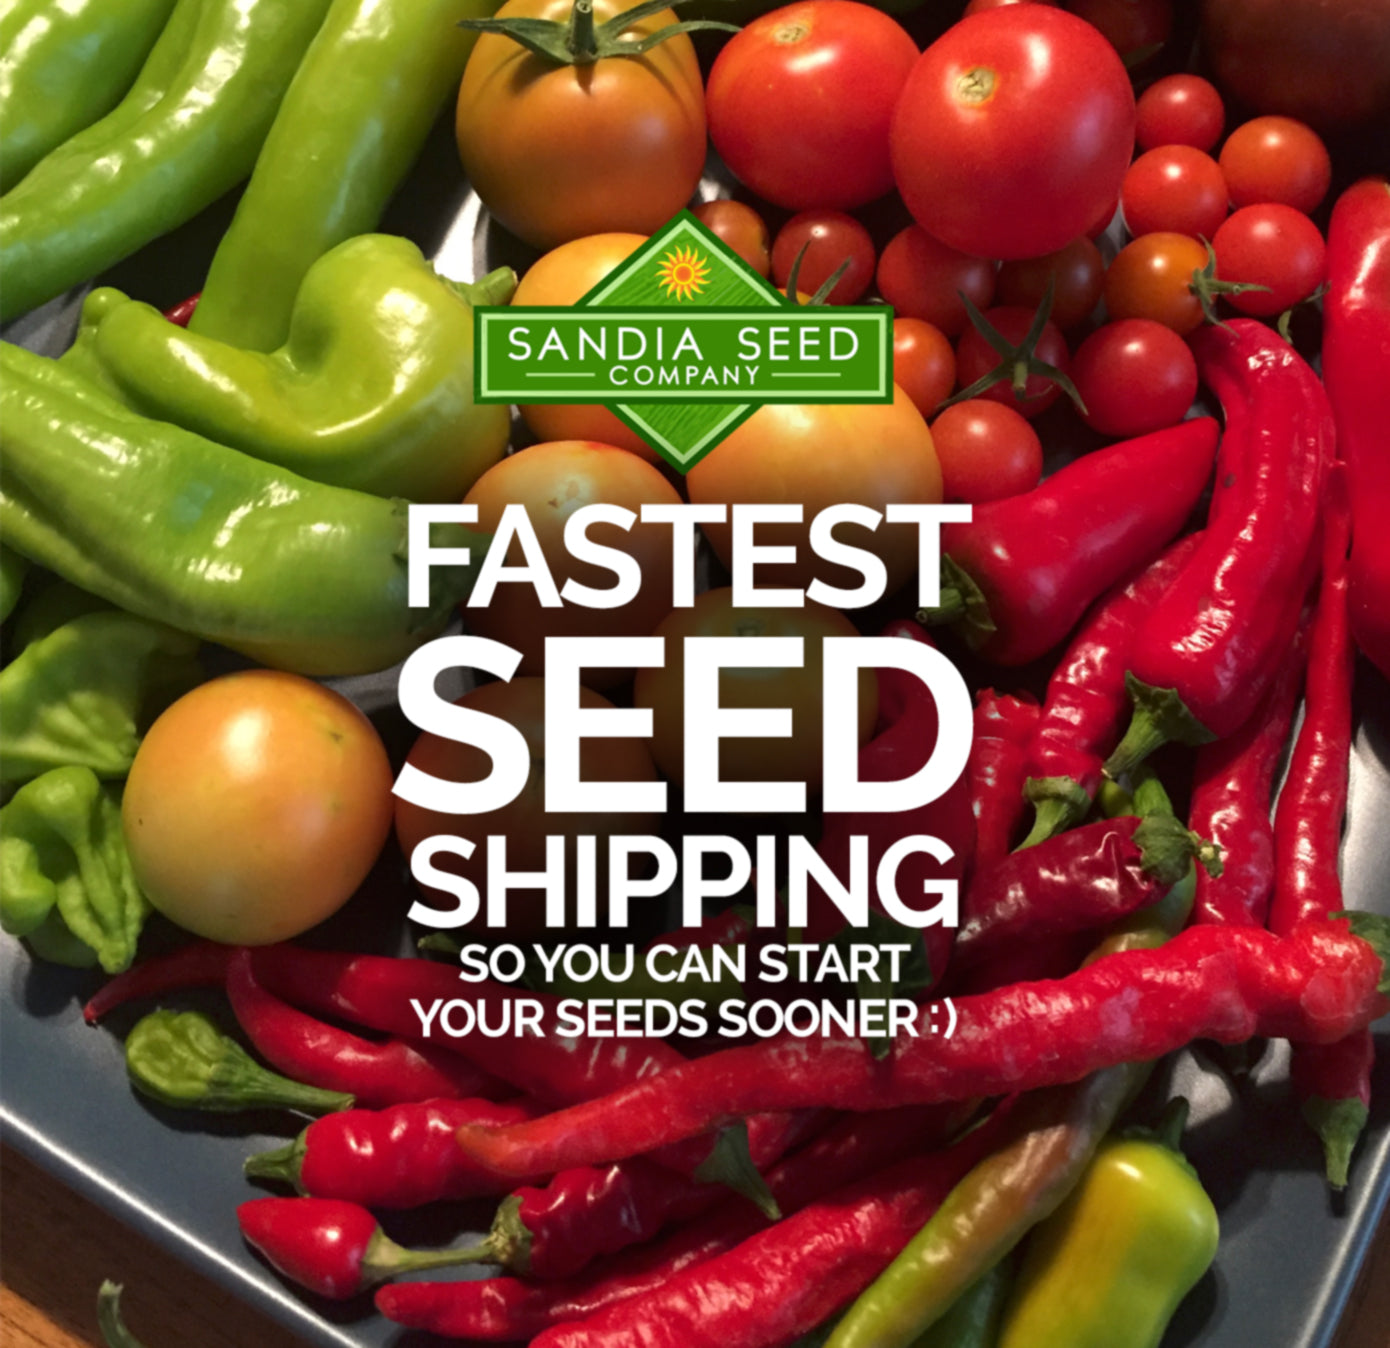 Fastest Seed Shipping from SandiaSeed.com